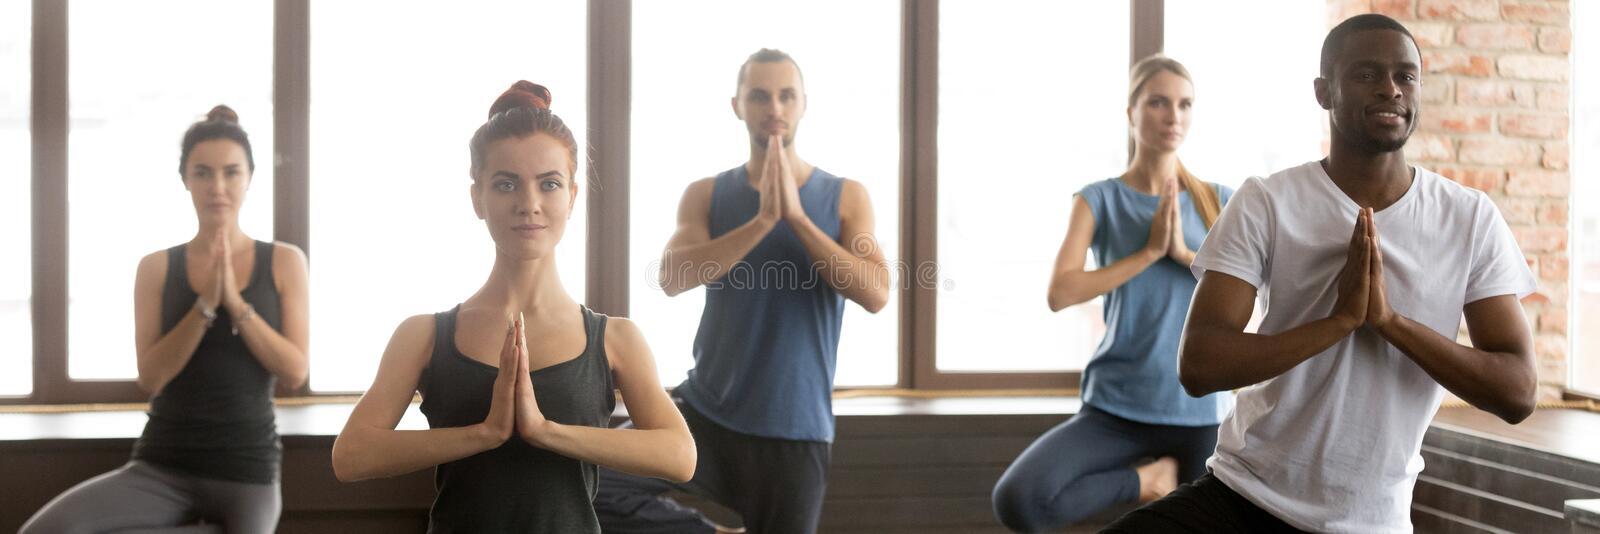 Horizontal image people during yoga session standing in Tree pose royalty free stock photos